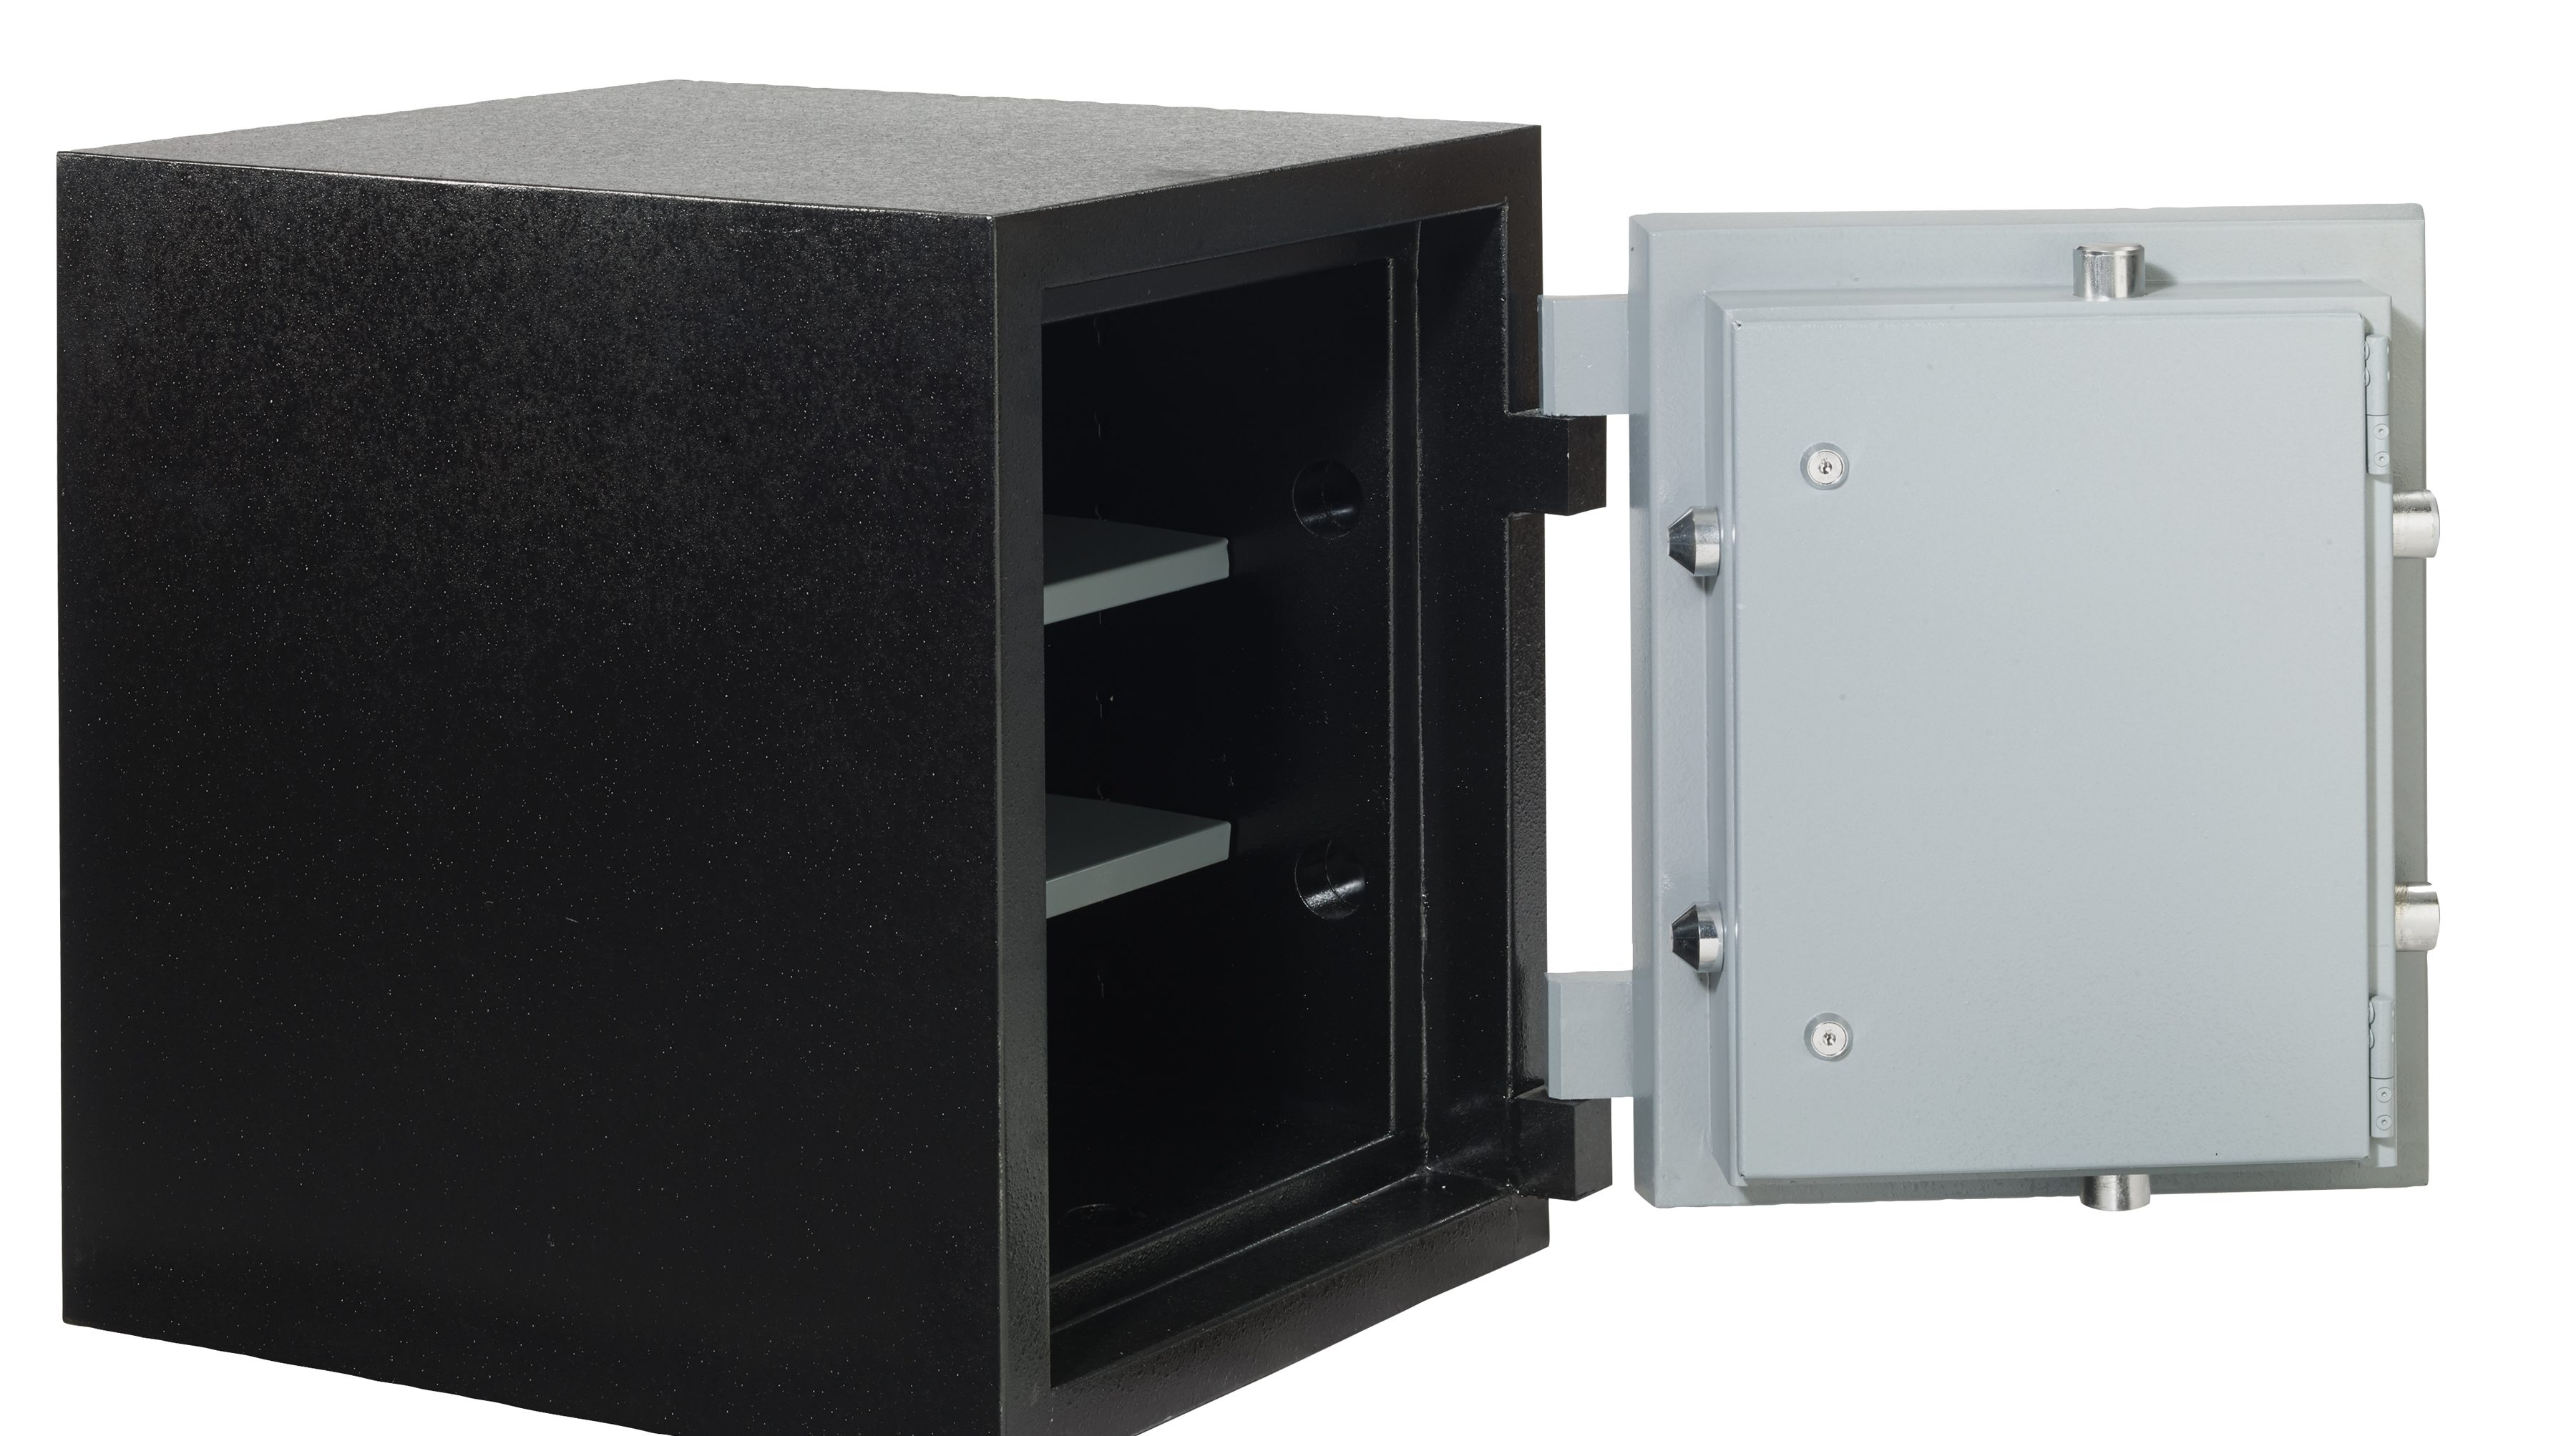 https://www.accusafes.com/wp-content/uploads/2018/10/HD-1814-SIDE-3600x2007.jpg